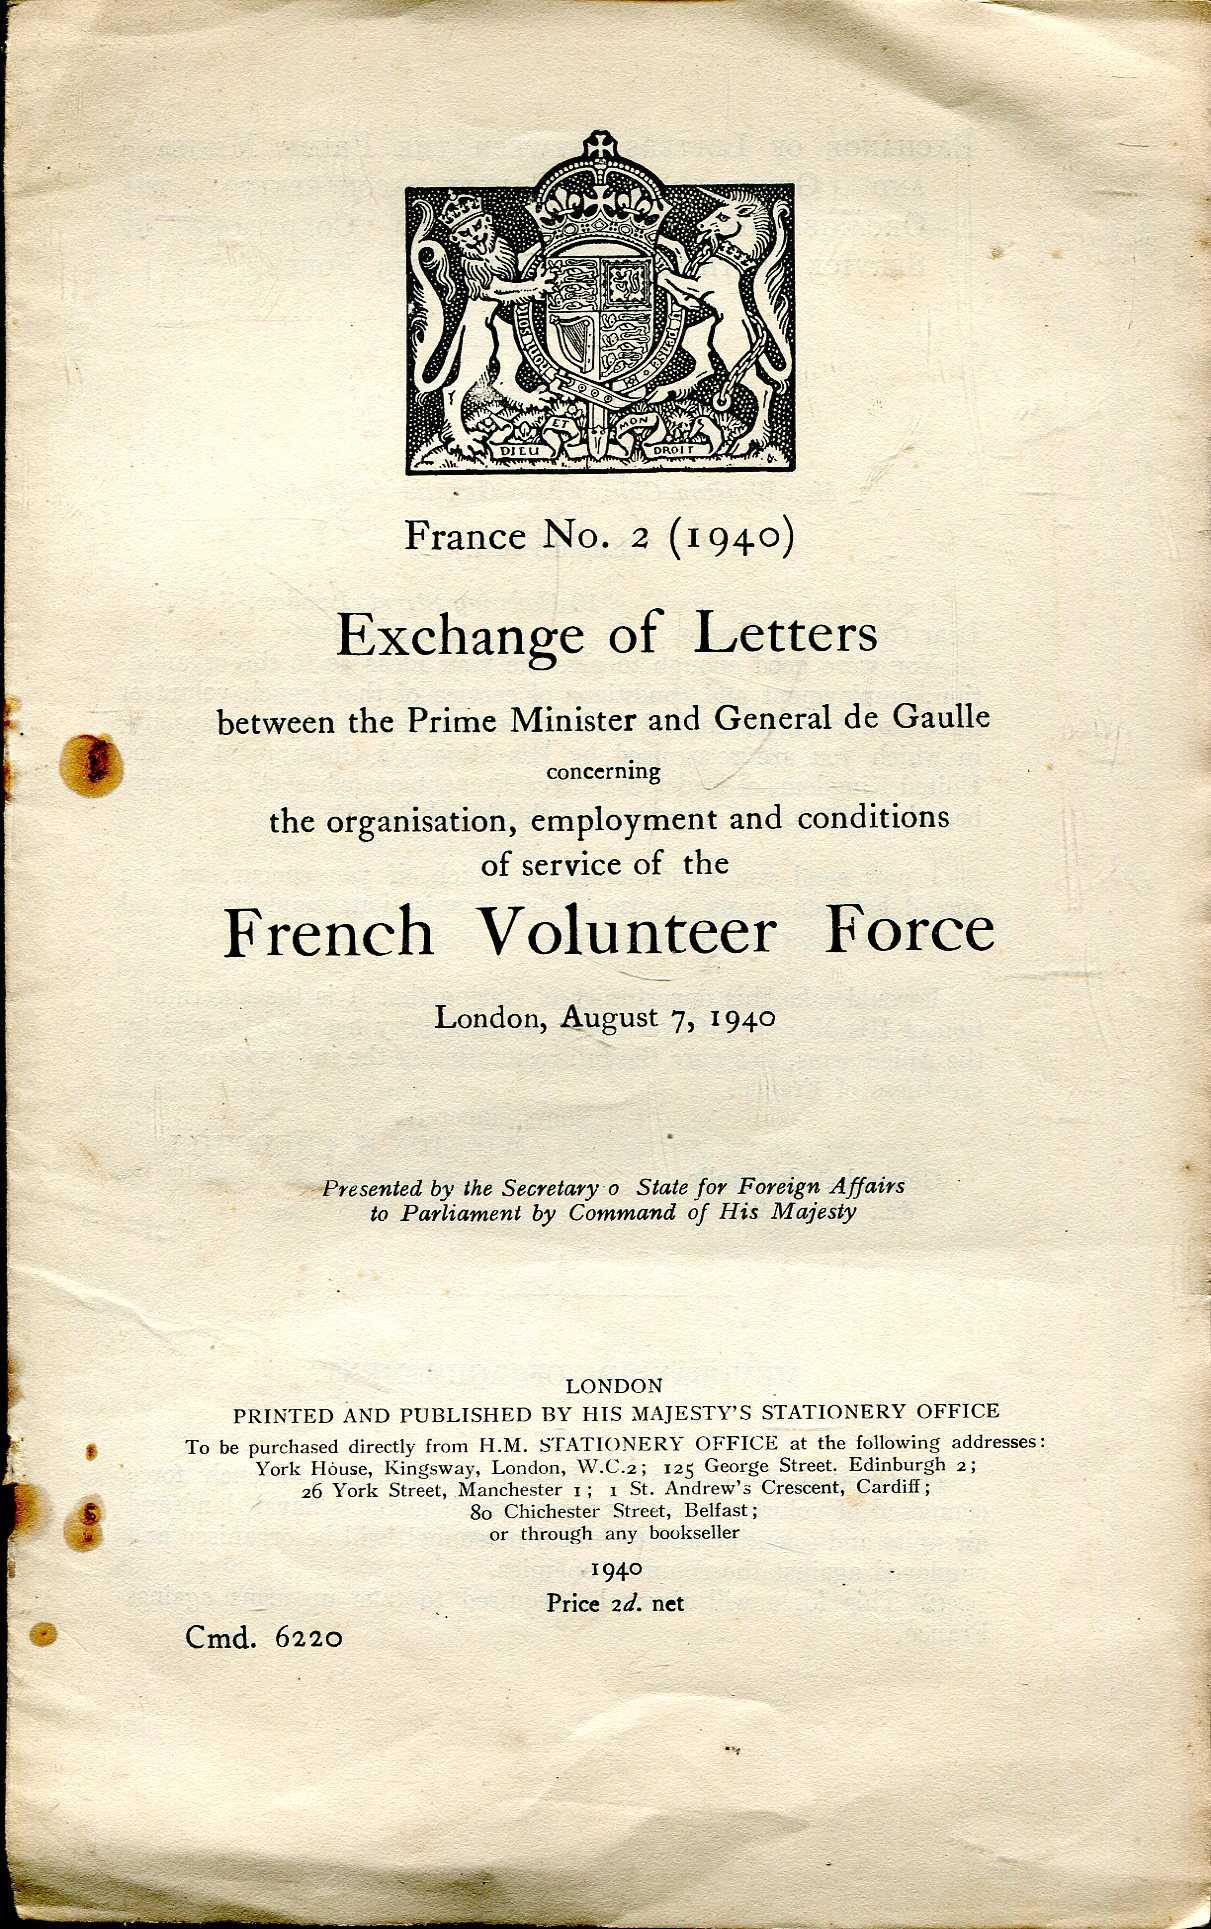 Image for Parliamentary Papers : France No 2 (1940) Exchange of Letters between the PM and Gen. de Gaulle concerning....the French Volunteer Force